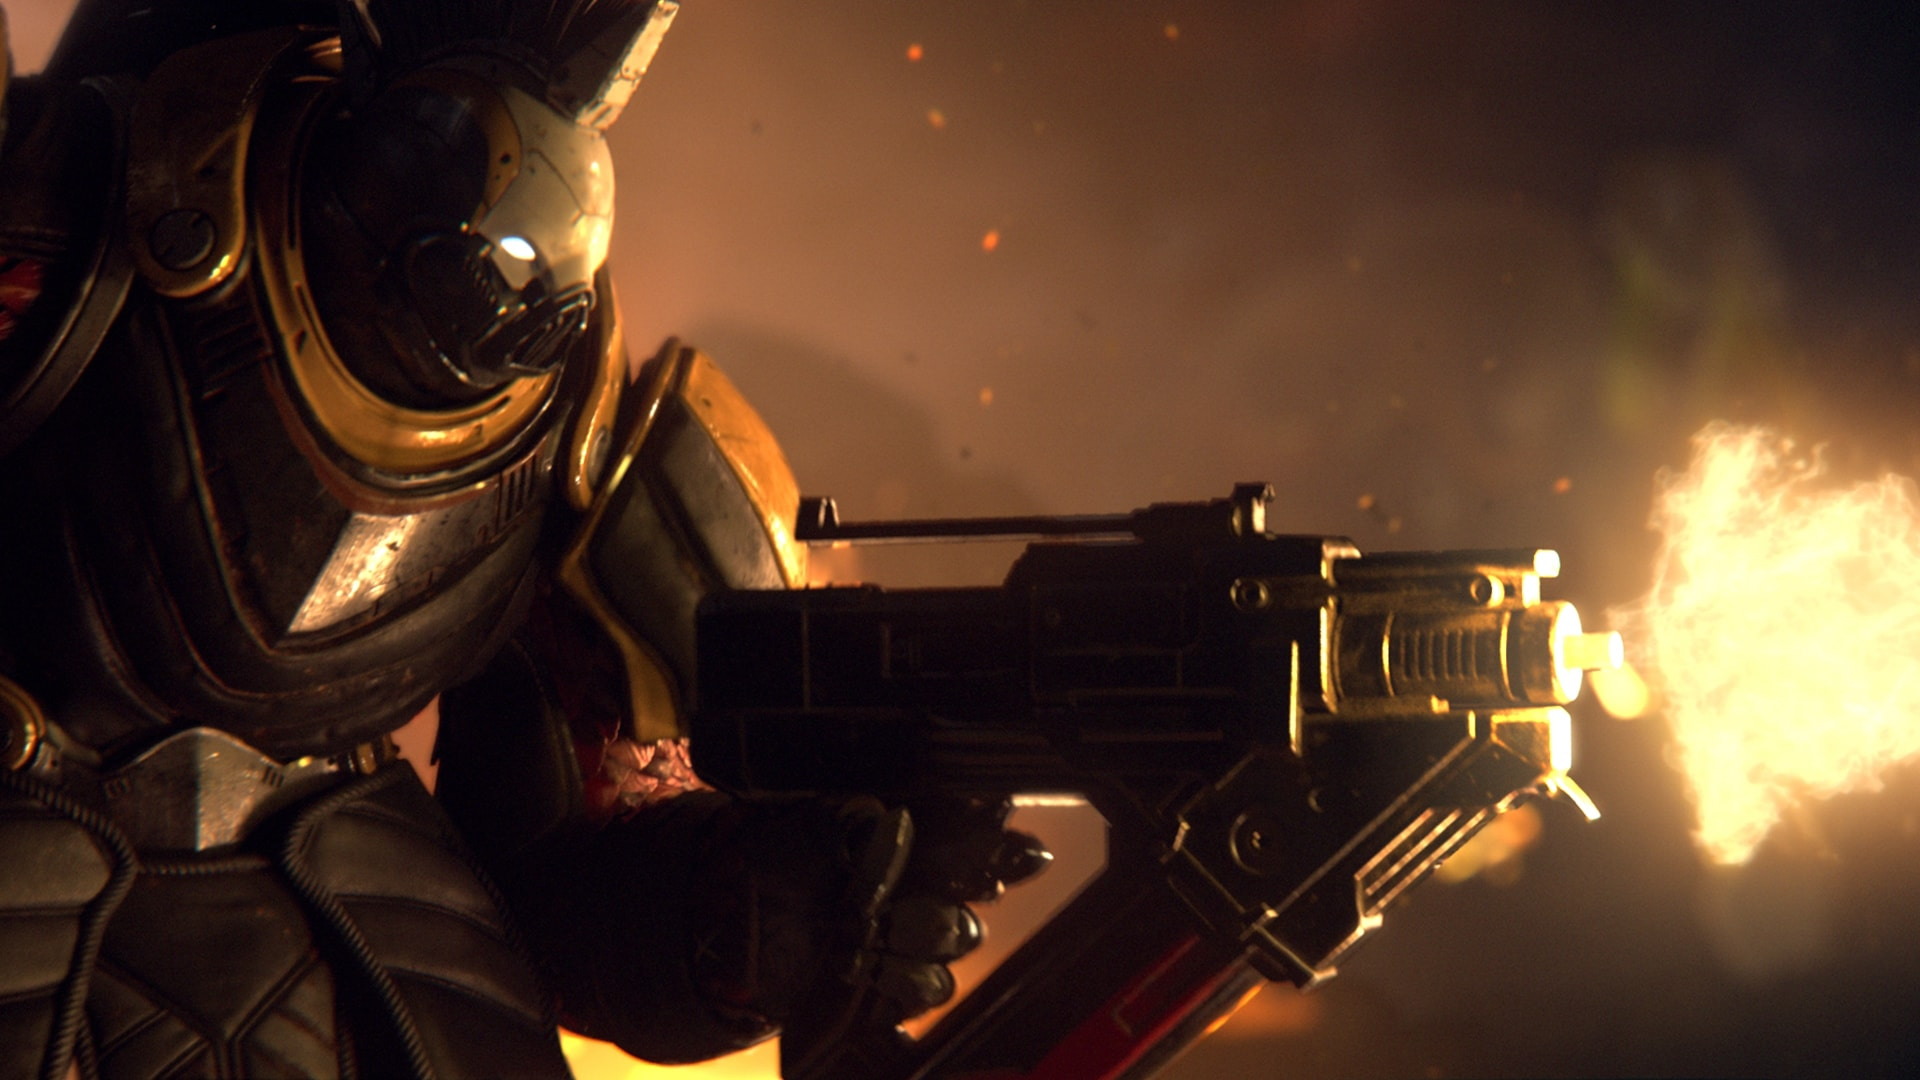 Destiny player accurately predicts the release of Destiny 2 before release